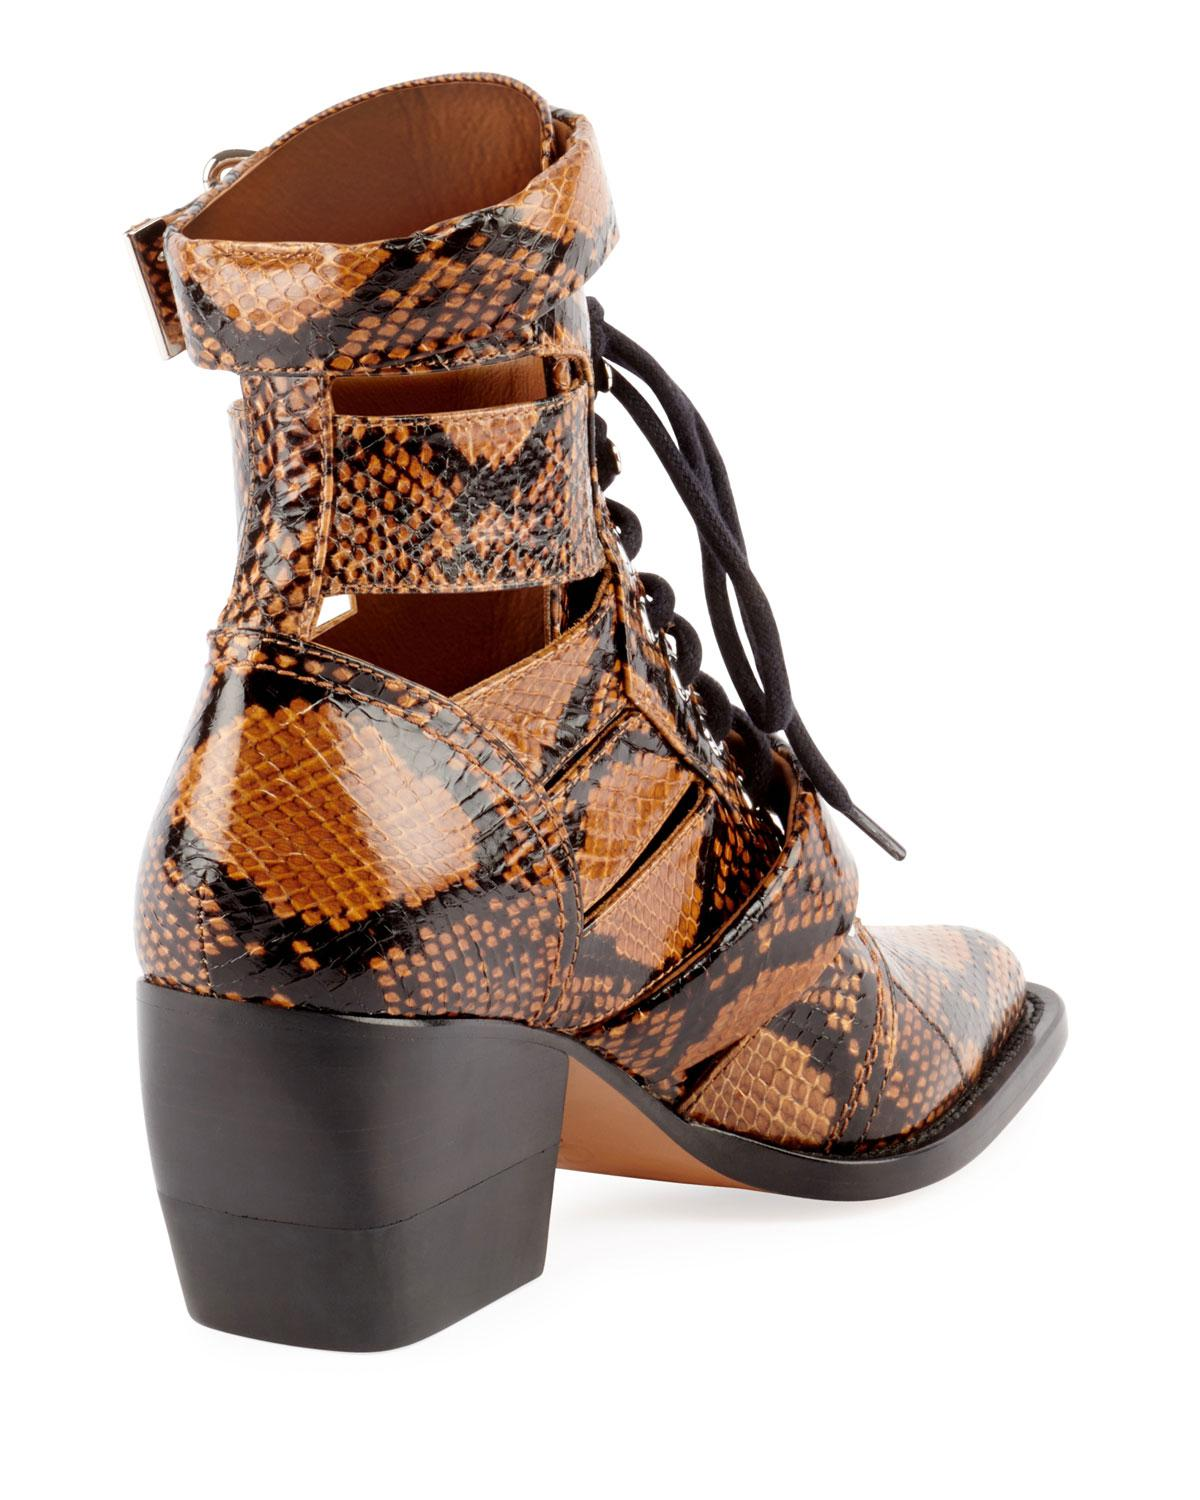 9d29c44d4 Lyst - Chloé Python-embossed Leather Combat Boot in Brown